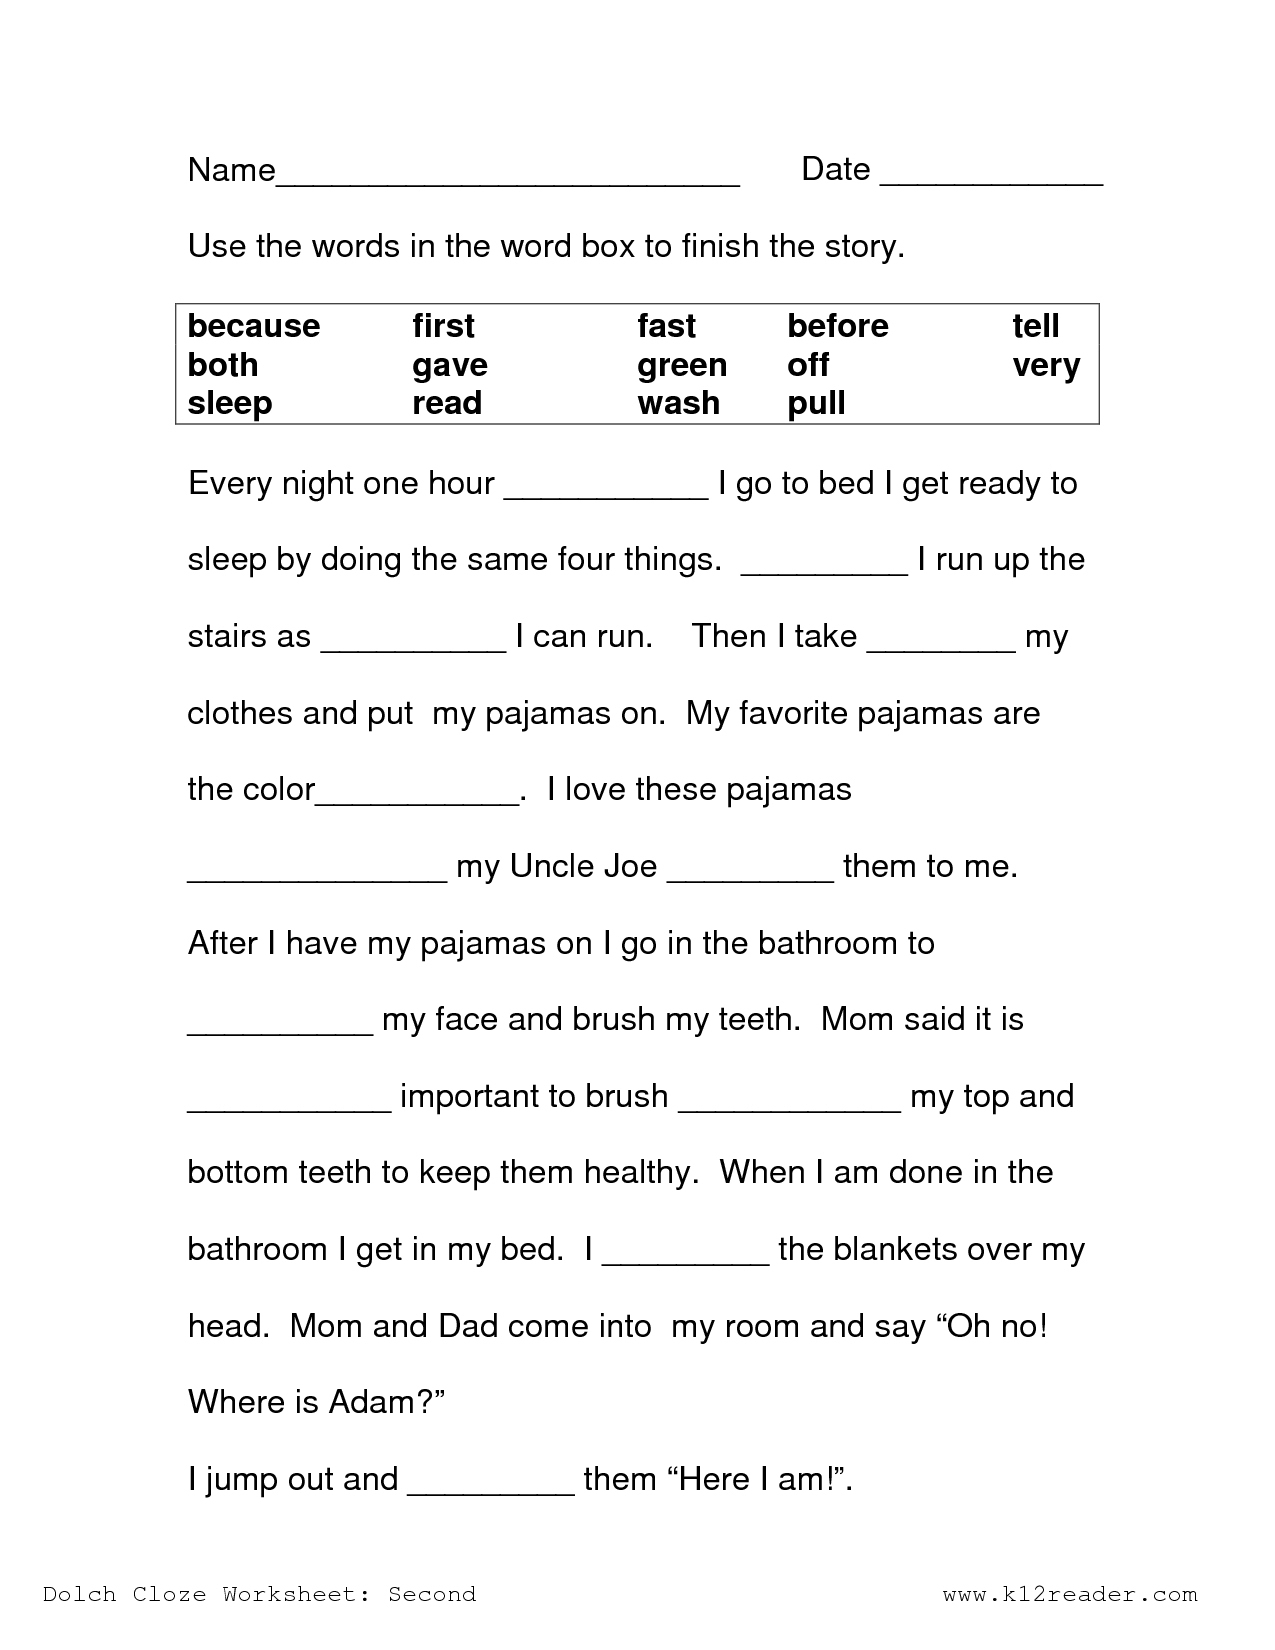 Free Printable Reading Comprehension Worksheets 3Rd Grade To Print | Free Printable Reading Comprehension Worksheets